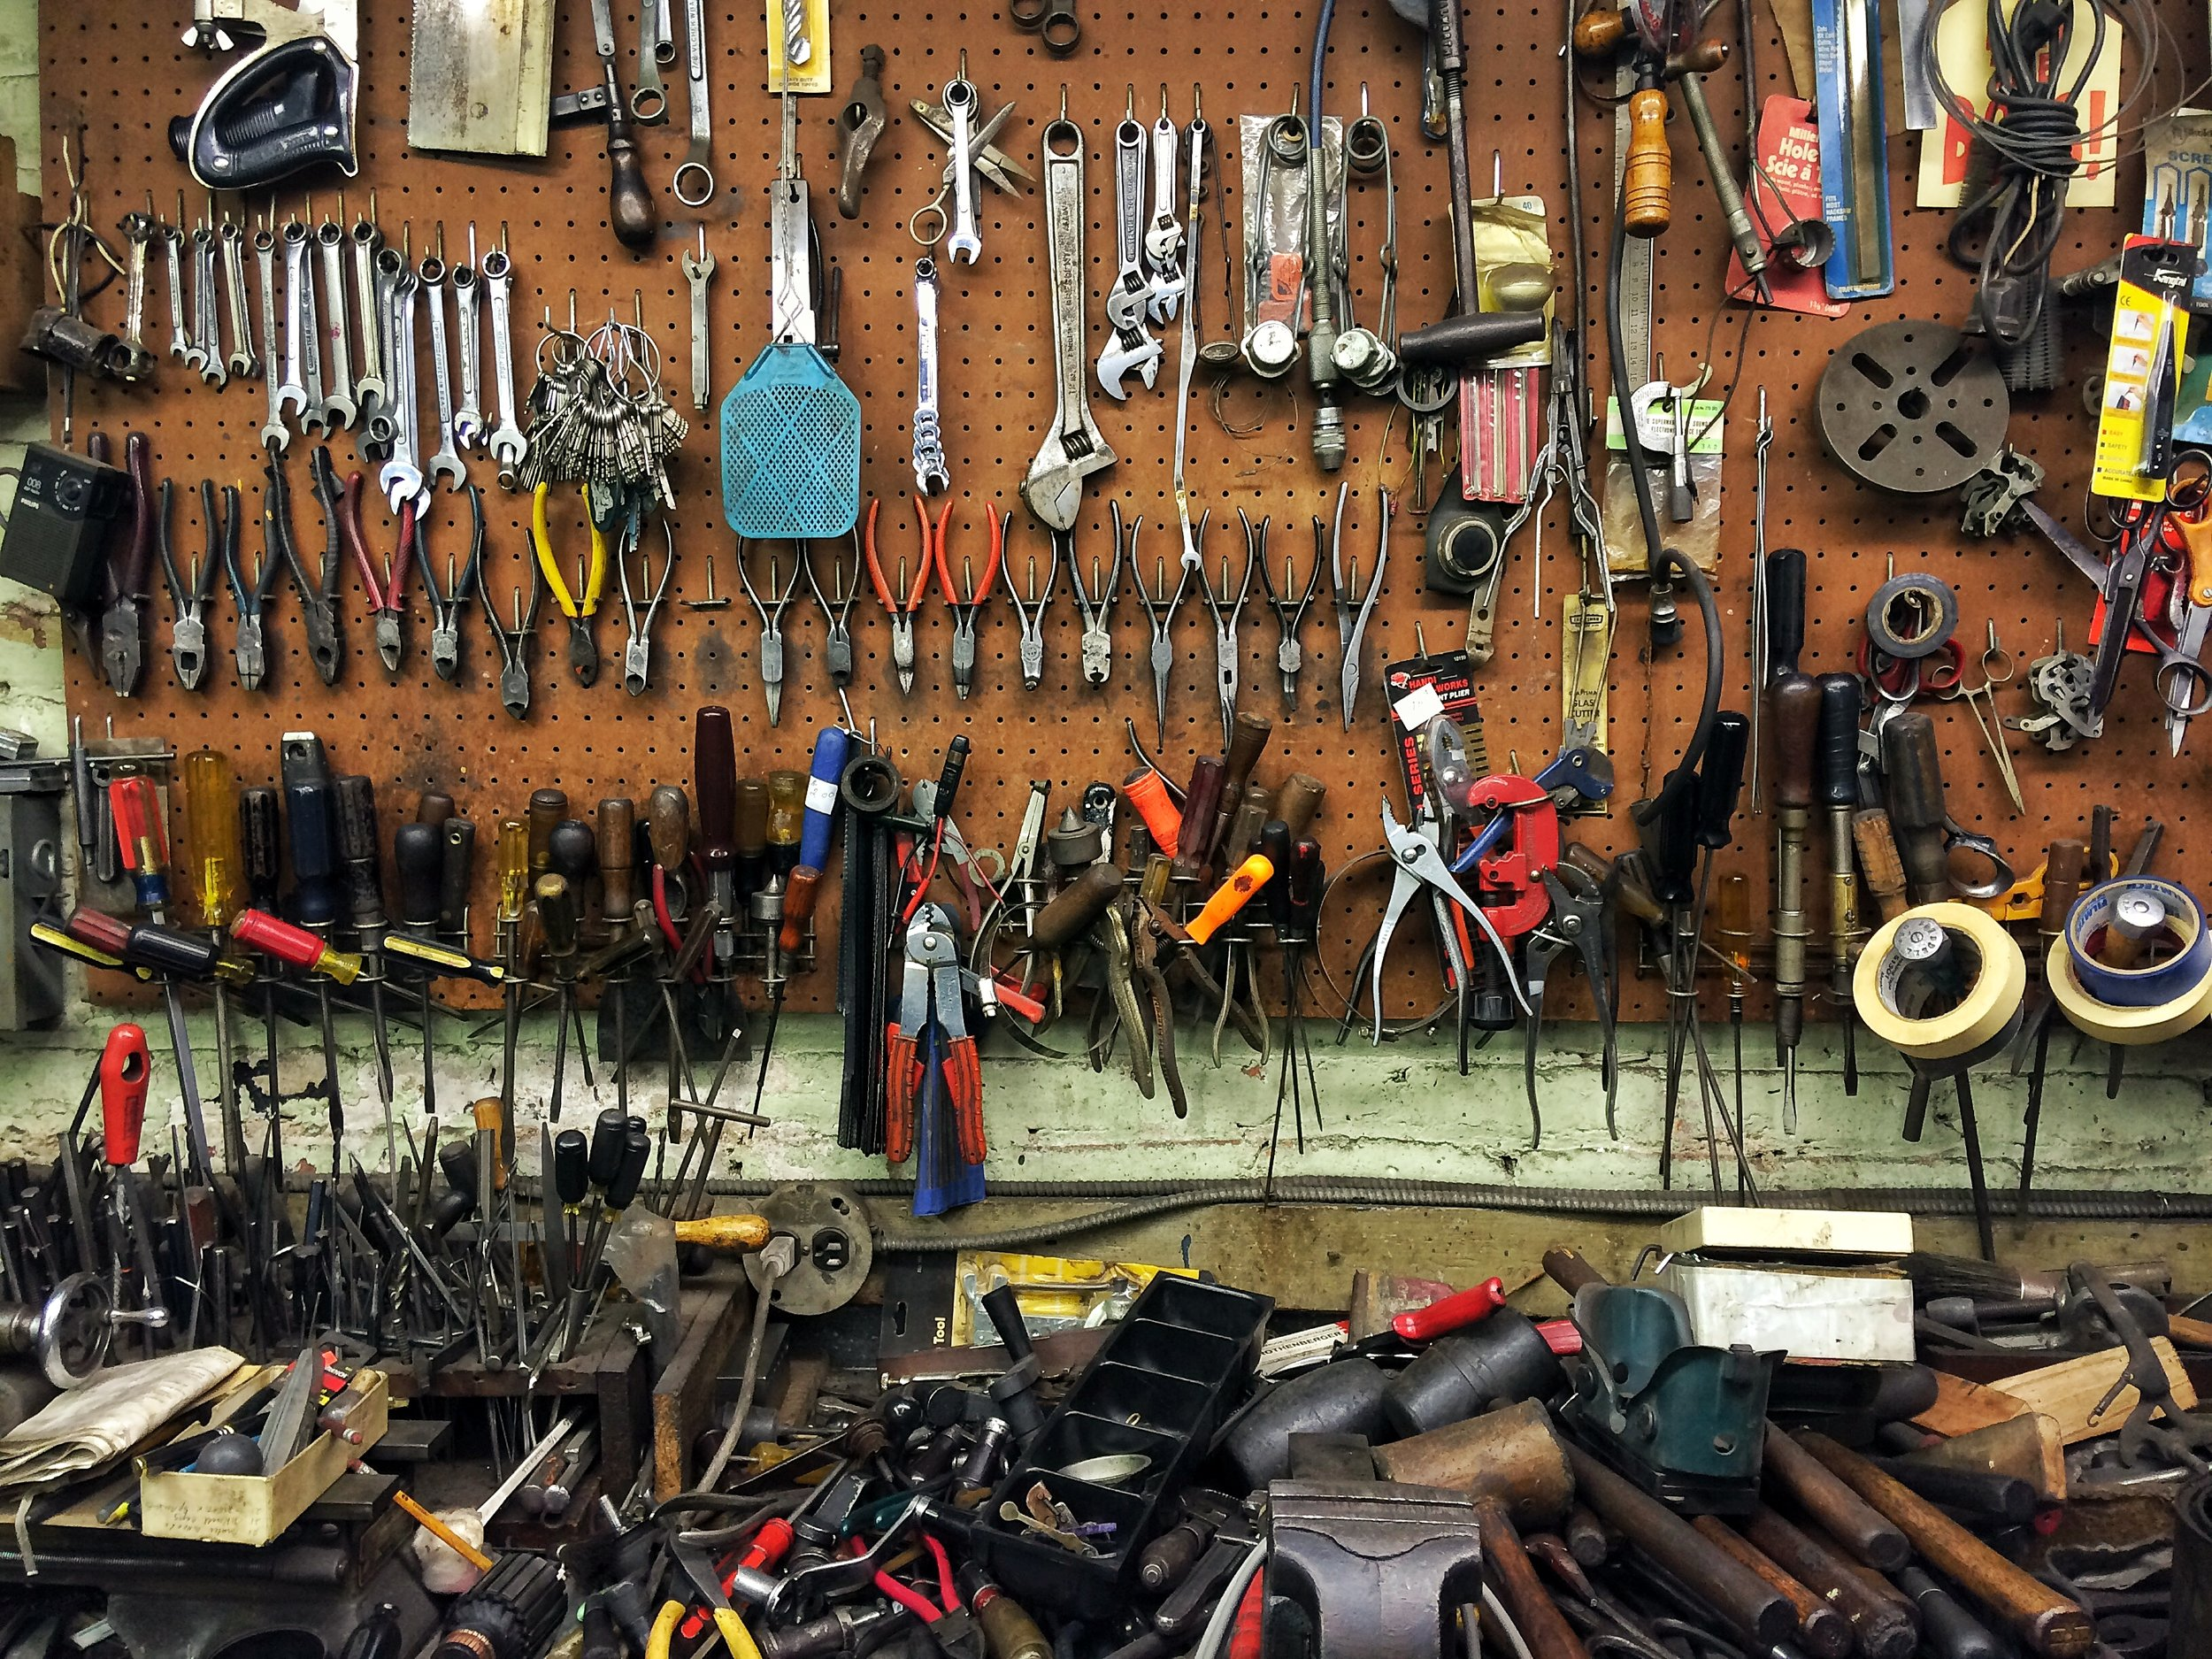 Tools arranged for easy access in Bernard Faerman's workshop. Photo credit P. Peterson